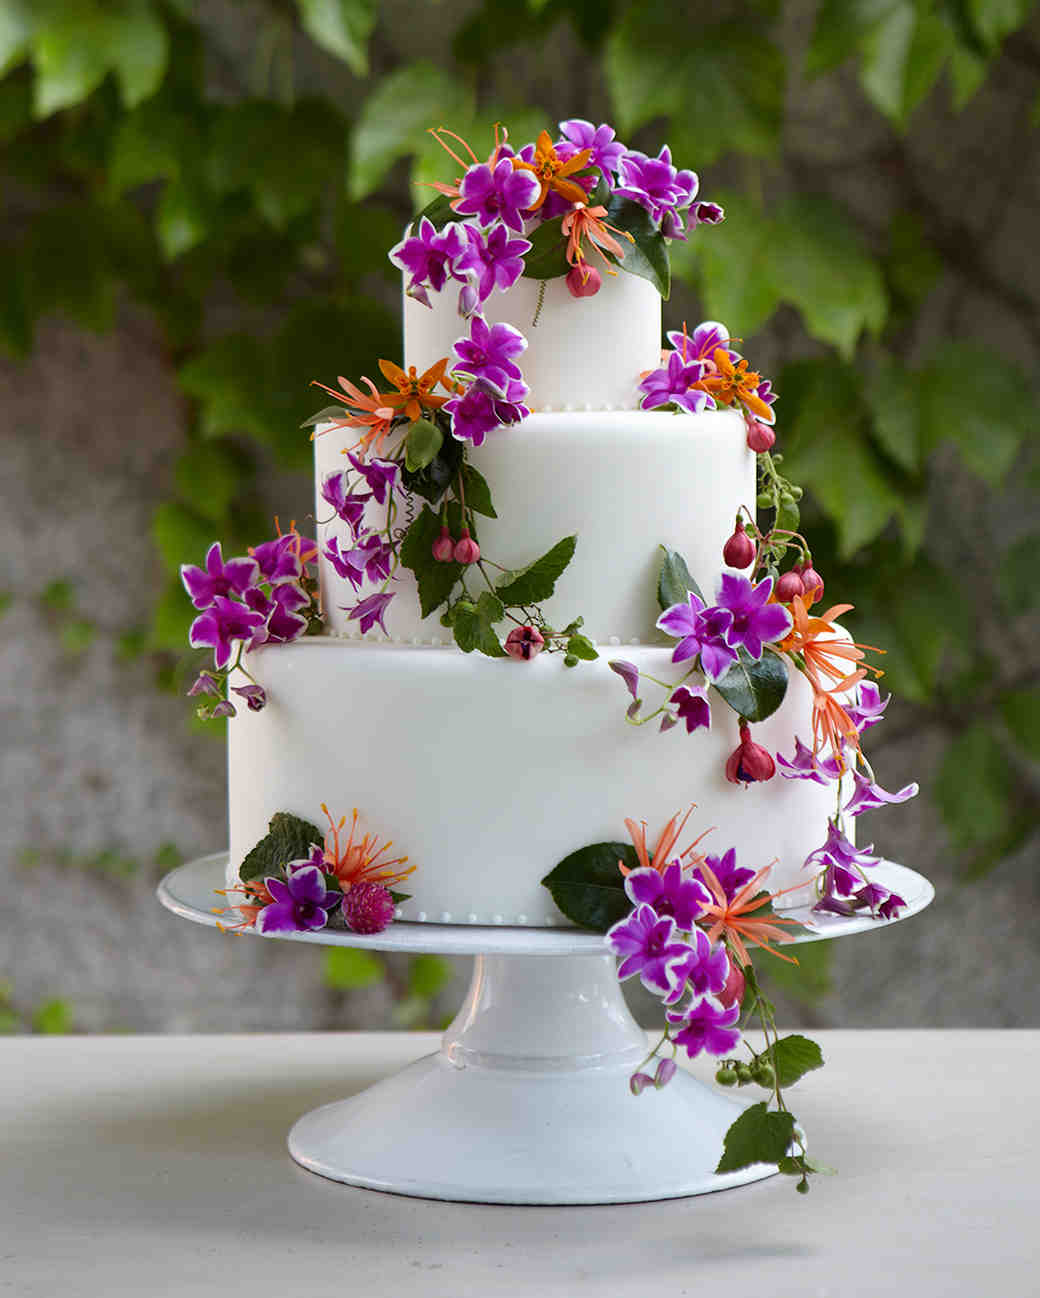 beach-wedding-cakes-wd106404-flowers-0615.jpg